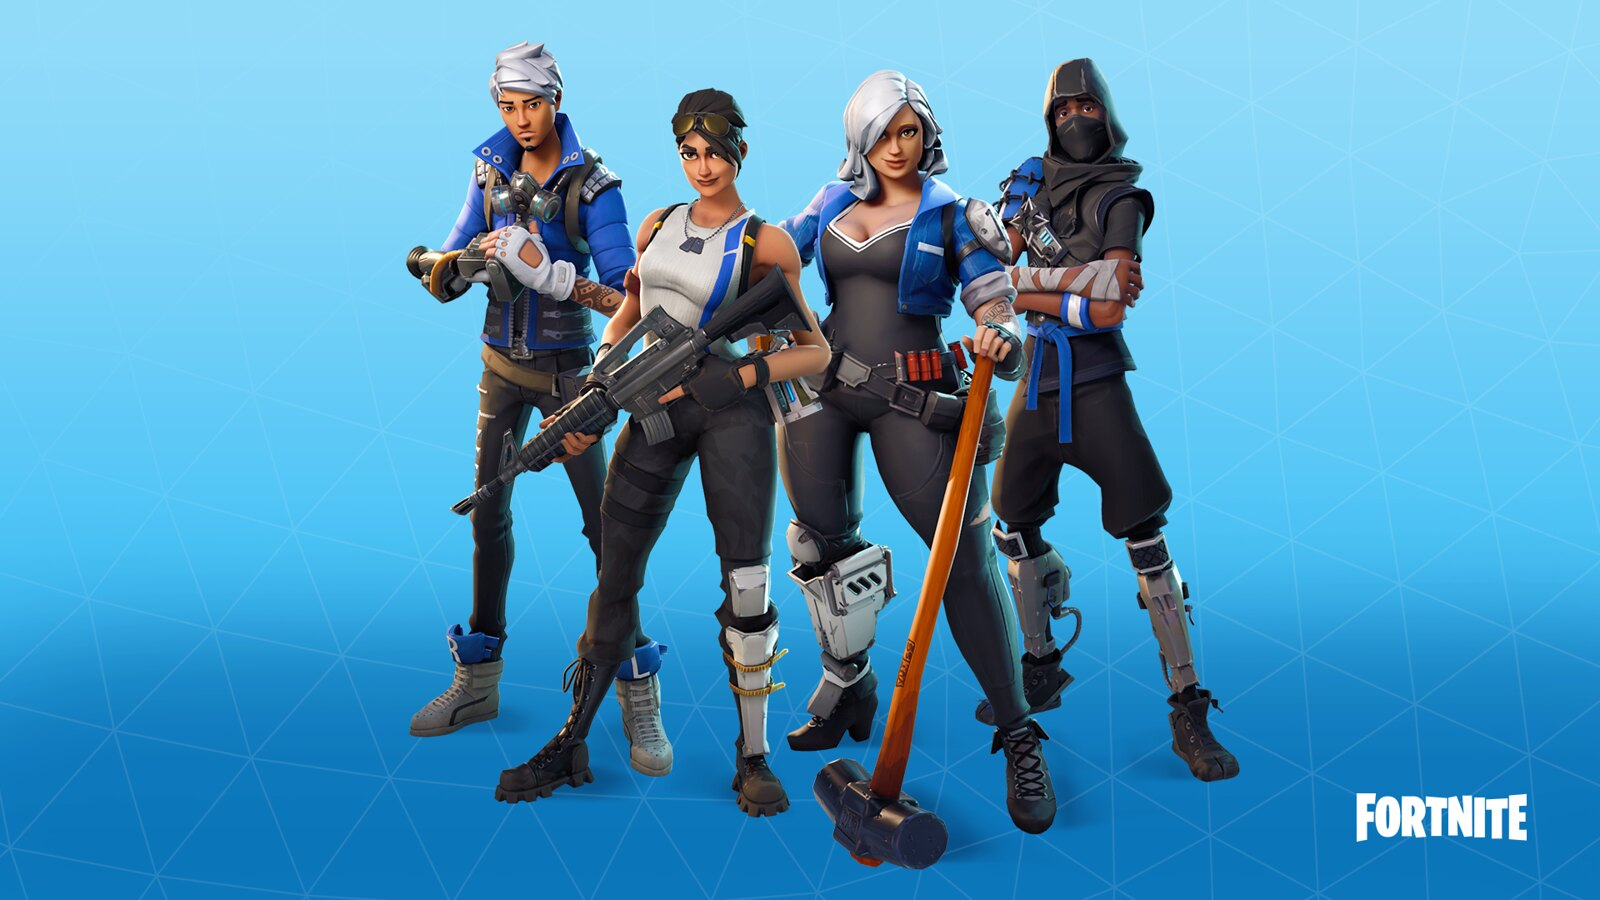 Fortnite coming 25th july with playstation exclusive - Fortnite save the world wallpaper ...